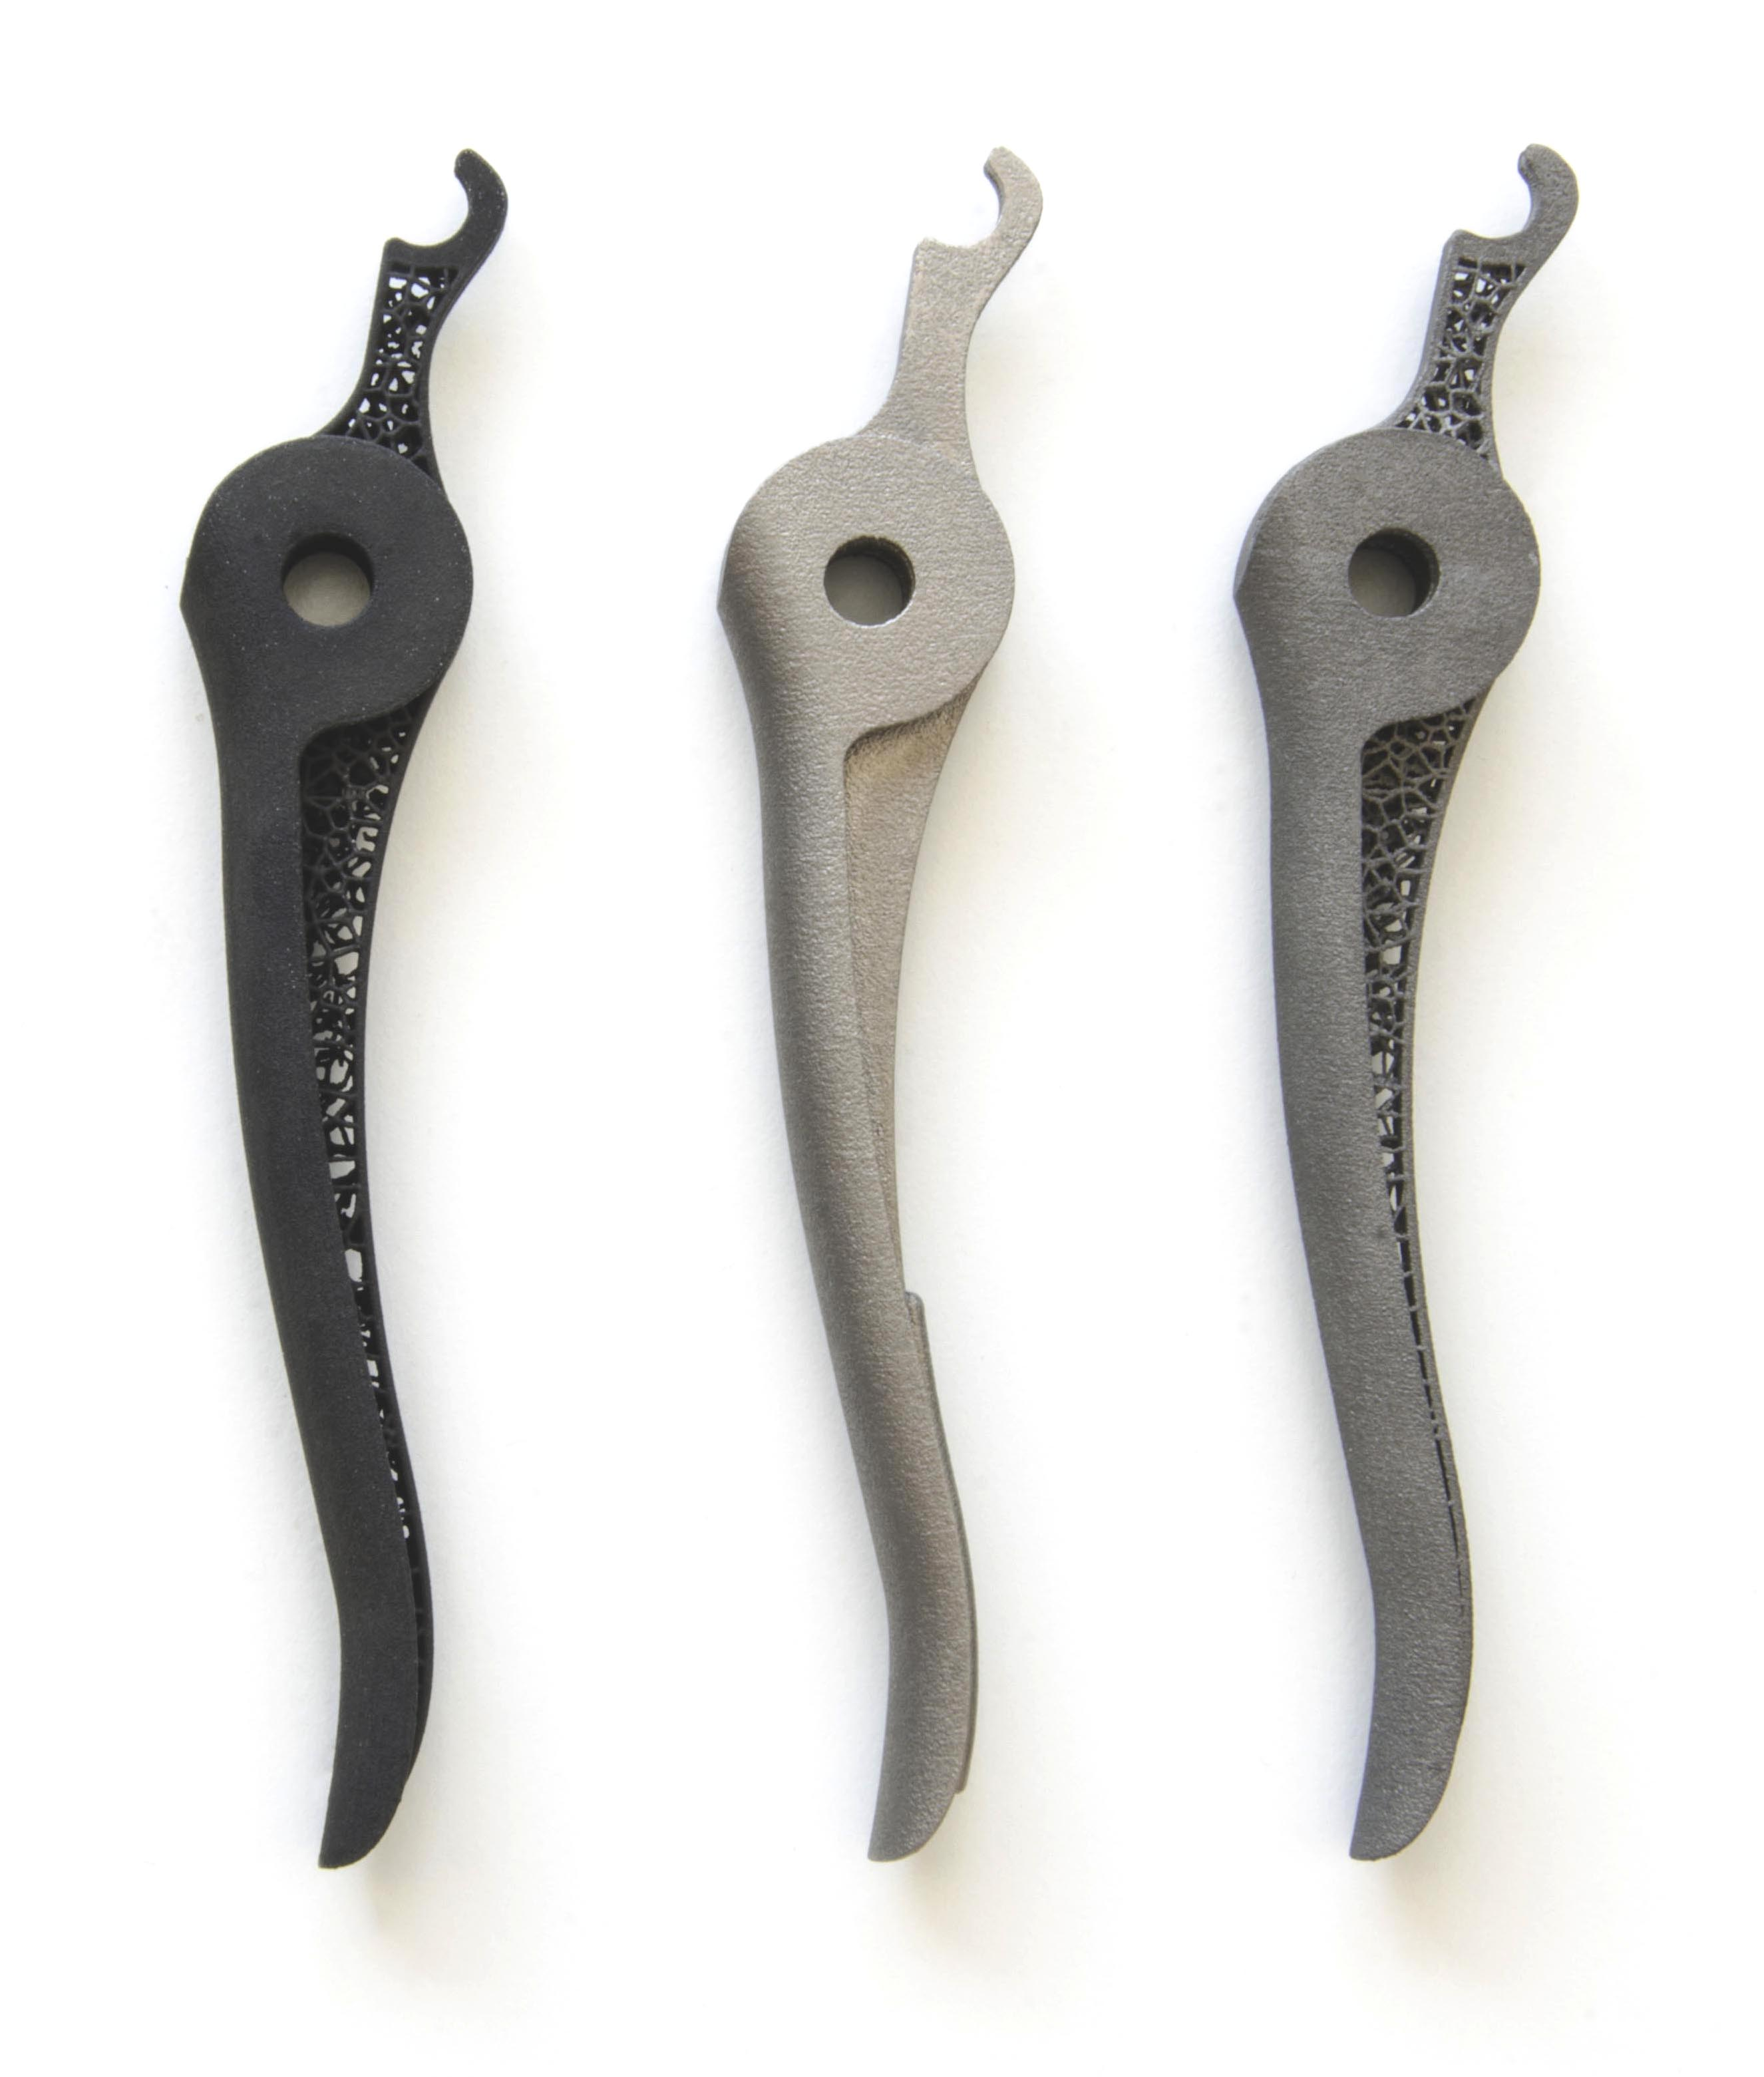 3D printed handles by Sculpteo Studio